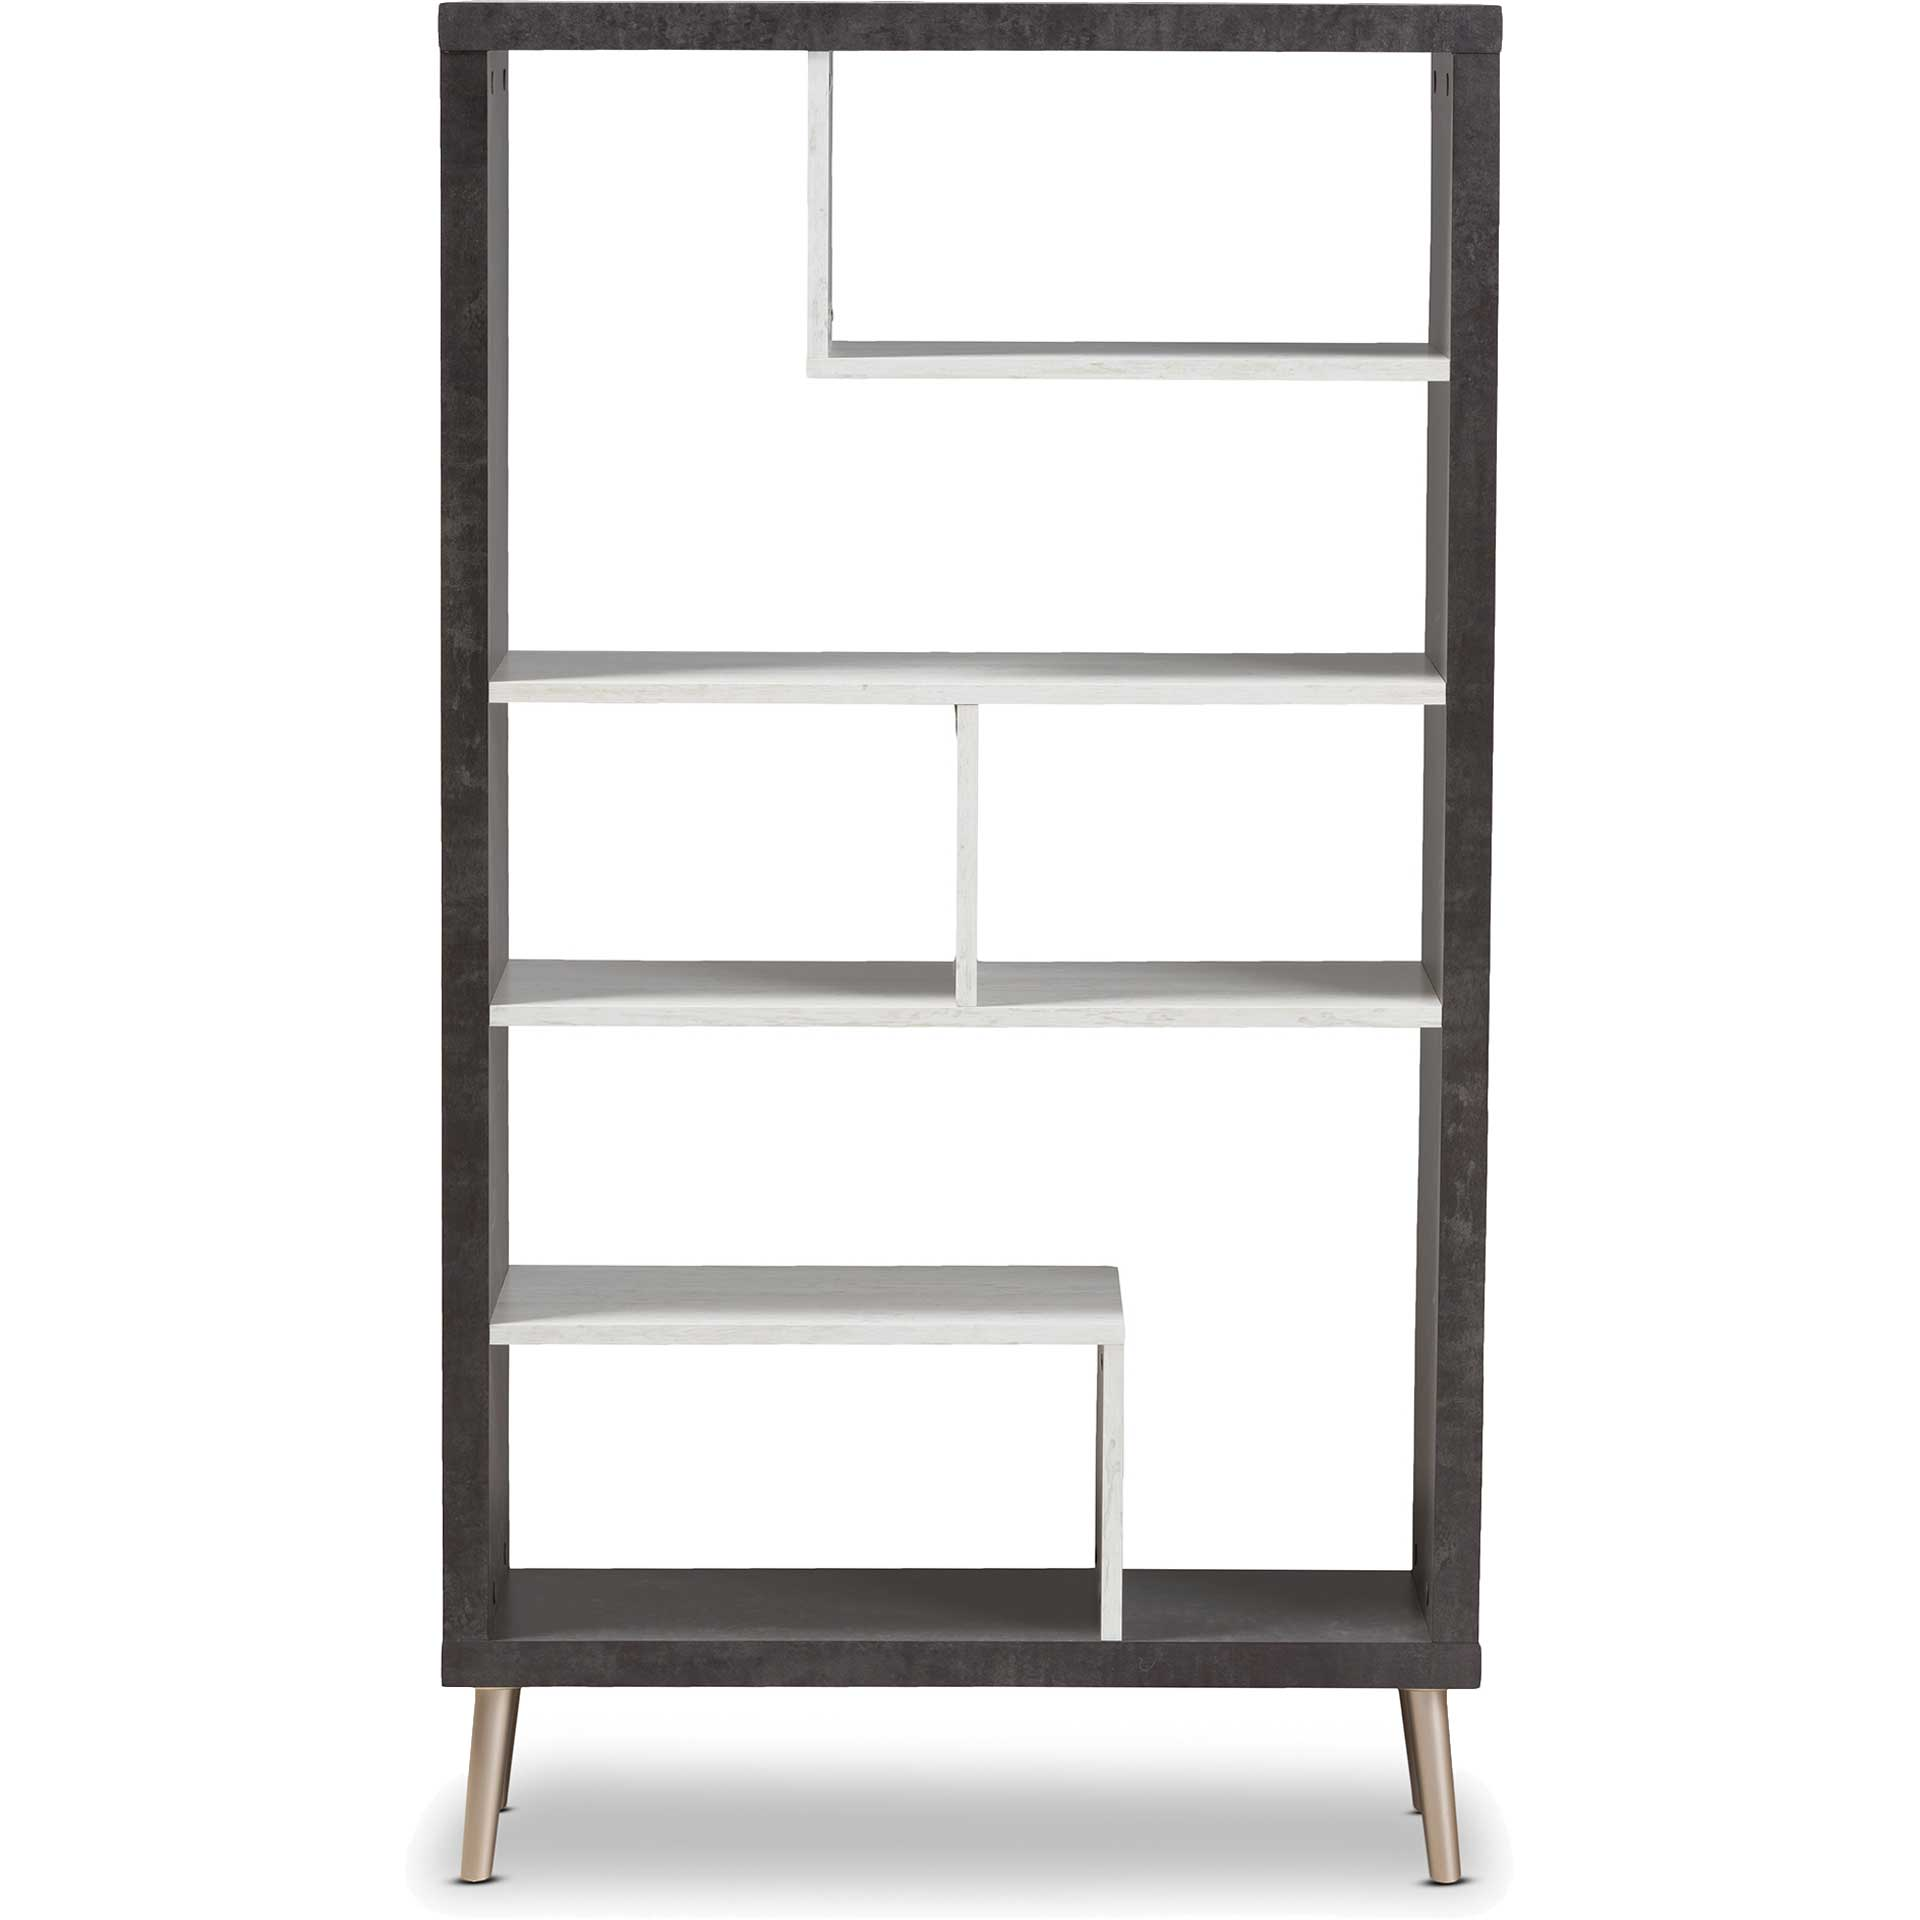 Athena Display Shelf Dark Brown/Light Gray